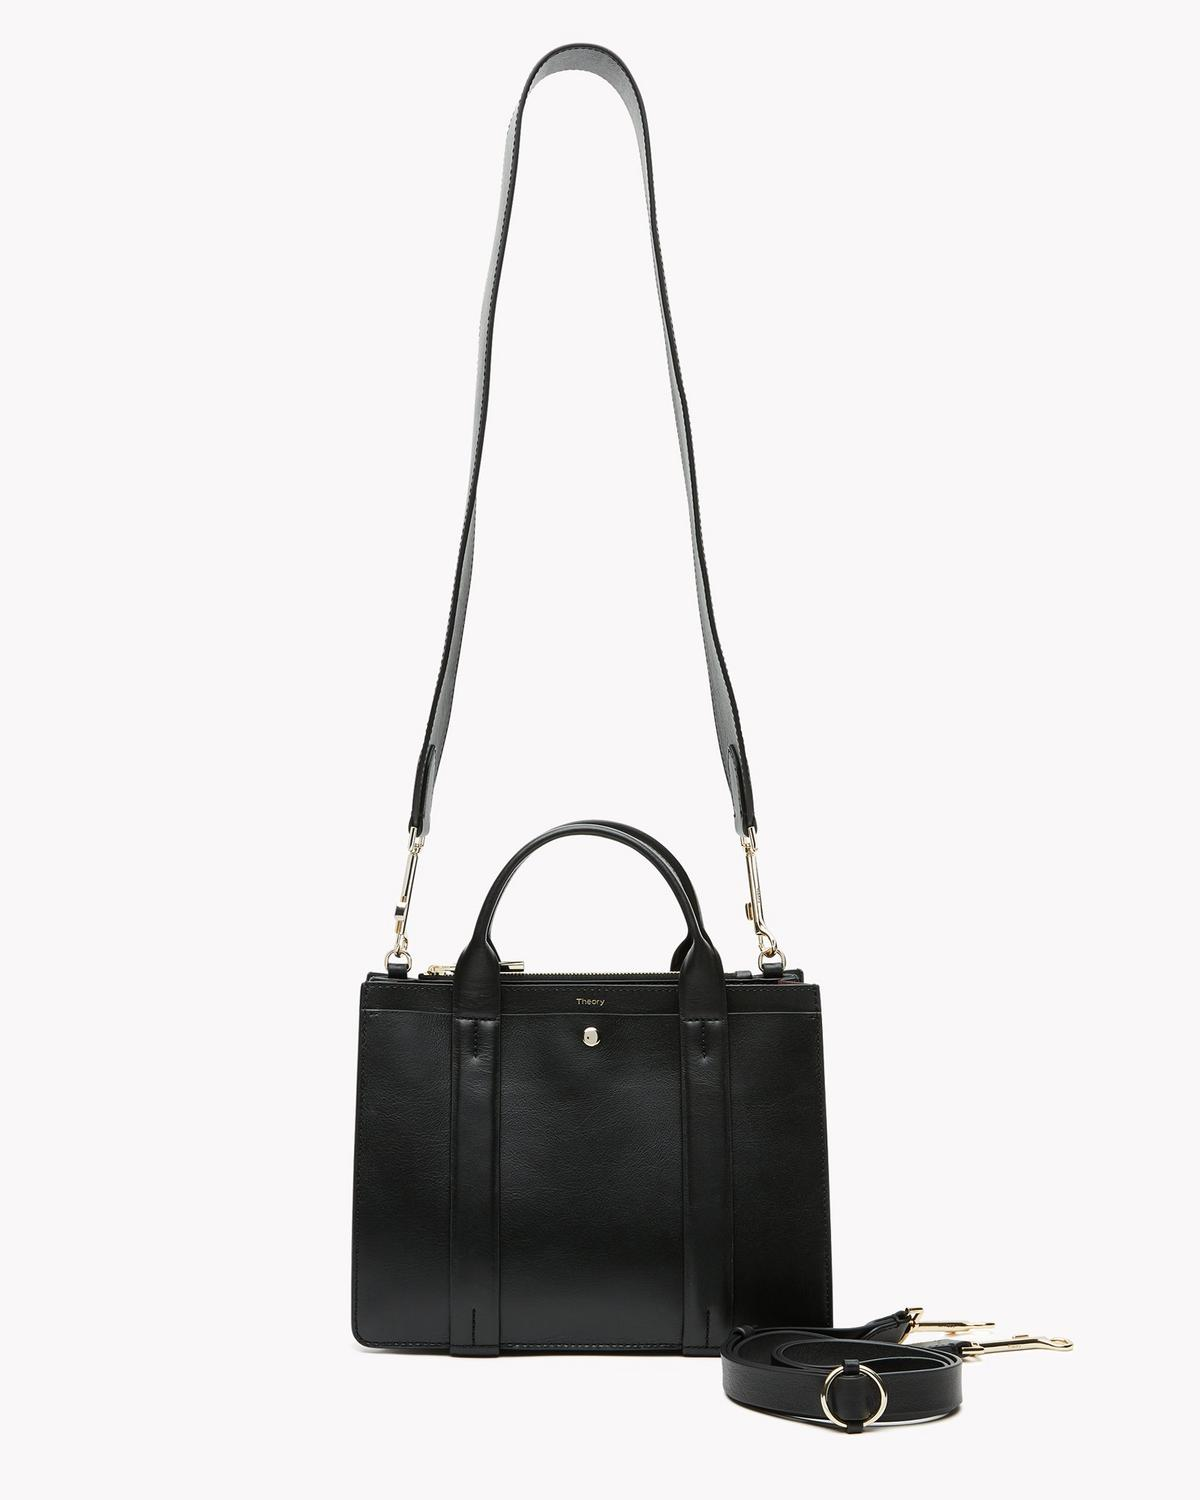 West Mini Satchel Bag in Leather